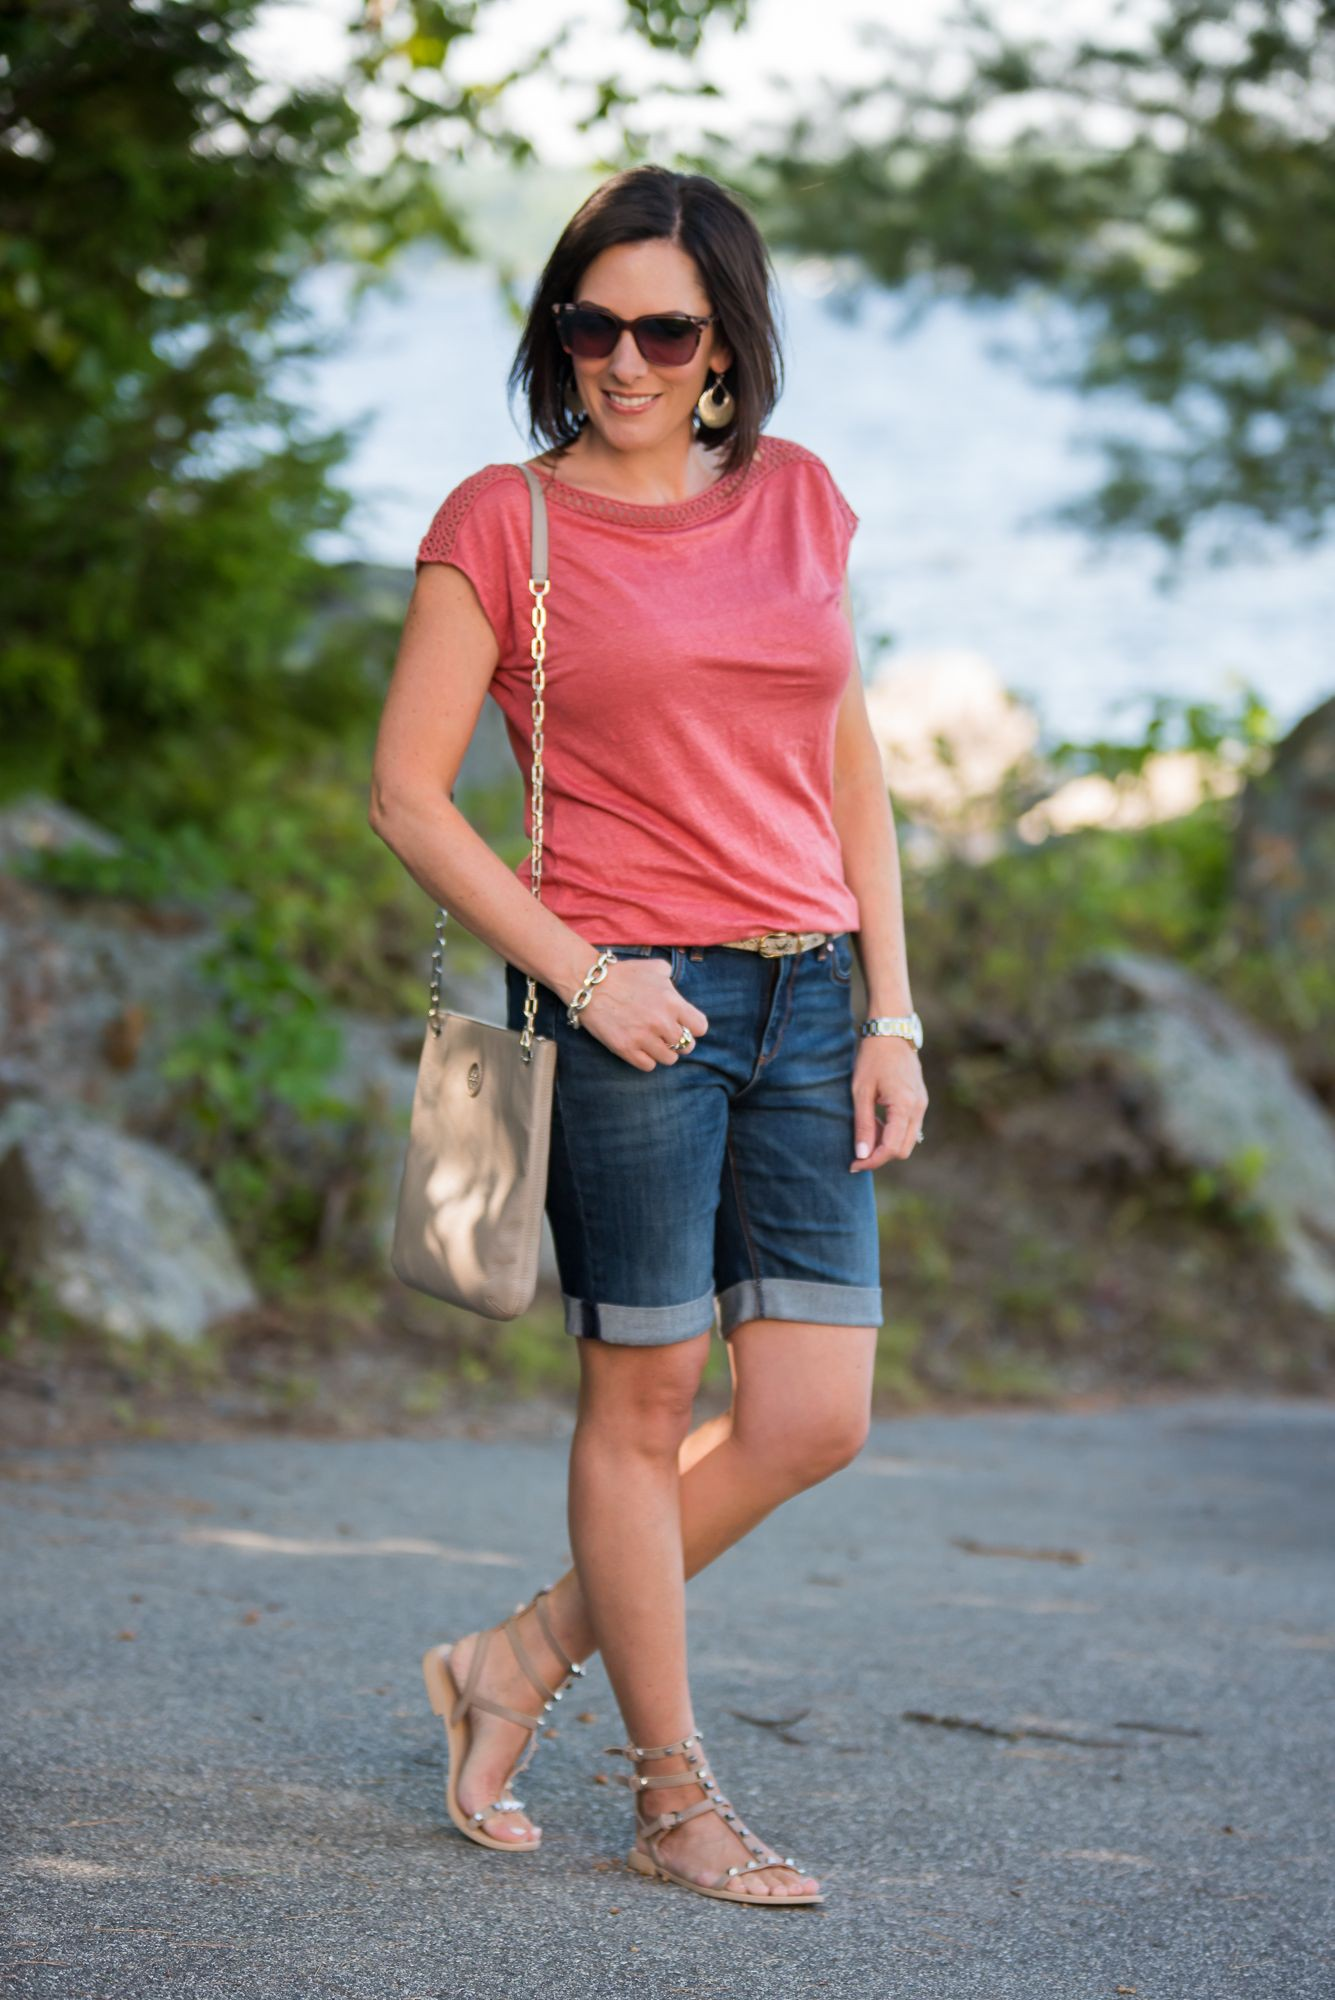 Denim bermuda shorts outfit, bermuda shorts, street fashion, jean shorts, casual wear, t shirt